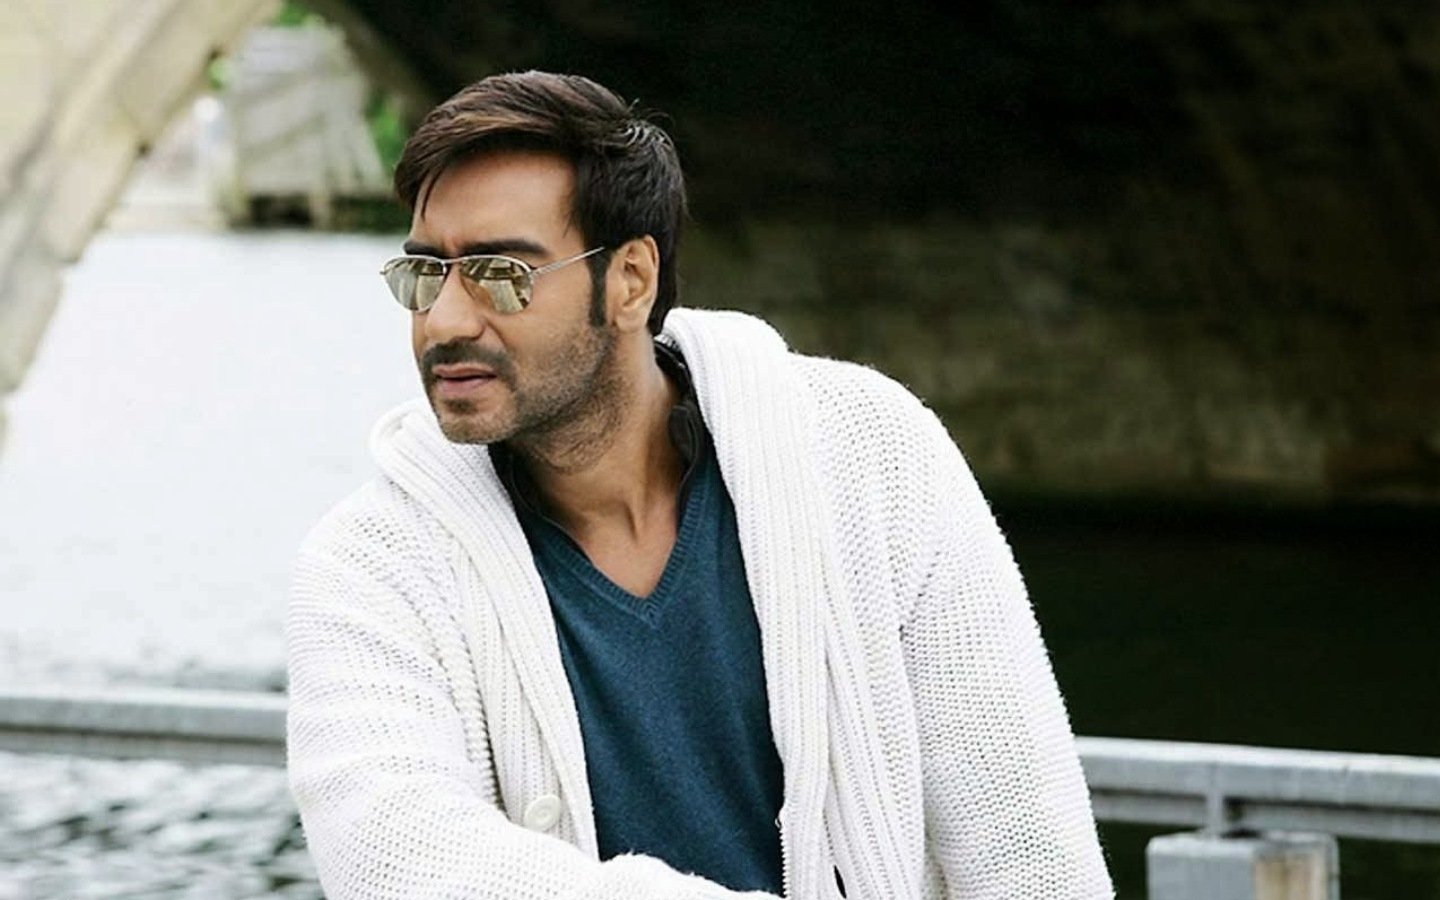 Ajay-Devgan-Bollywood-Actor-HD-Ajay-Devgan-Bollywood-Actor-HD-ajay-devgan-lates-wallpaper-wp3402236